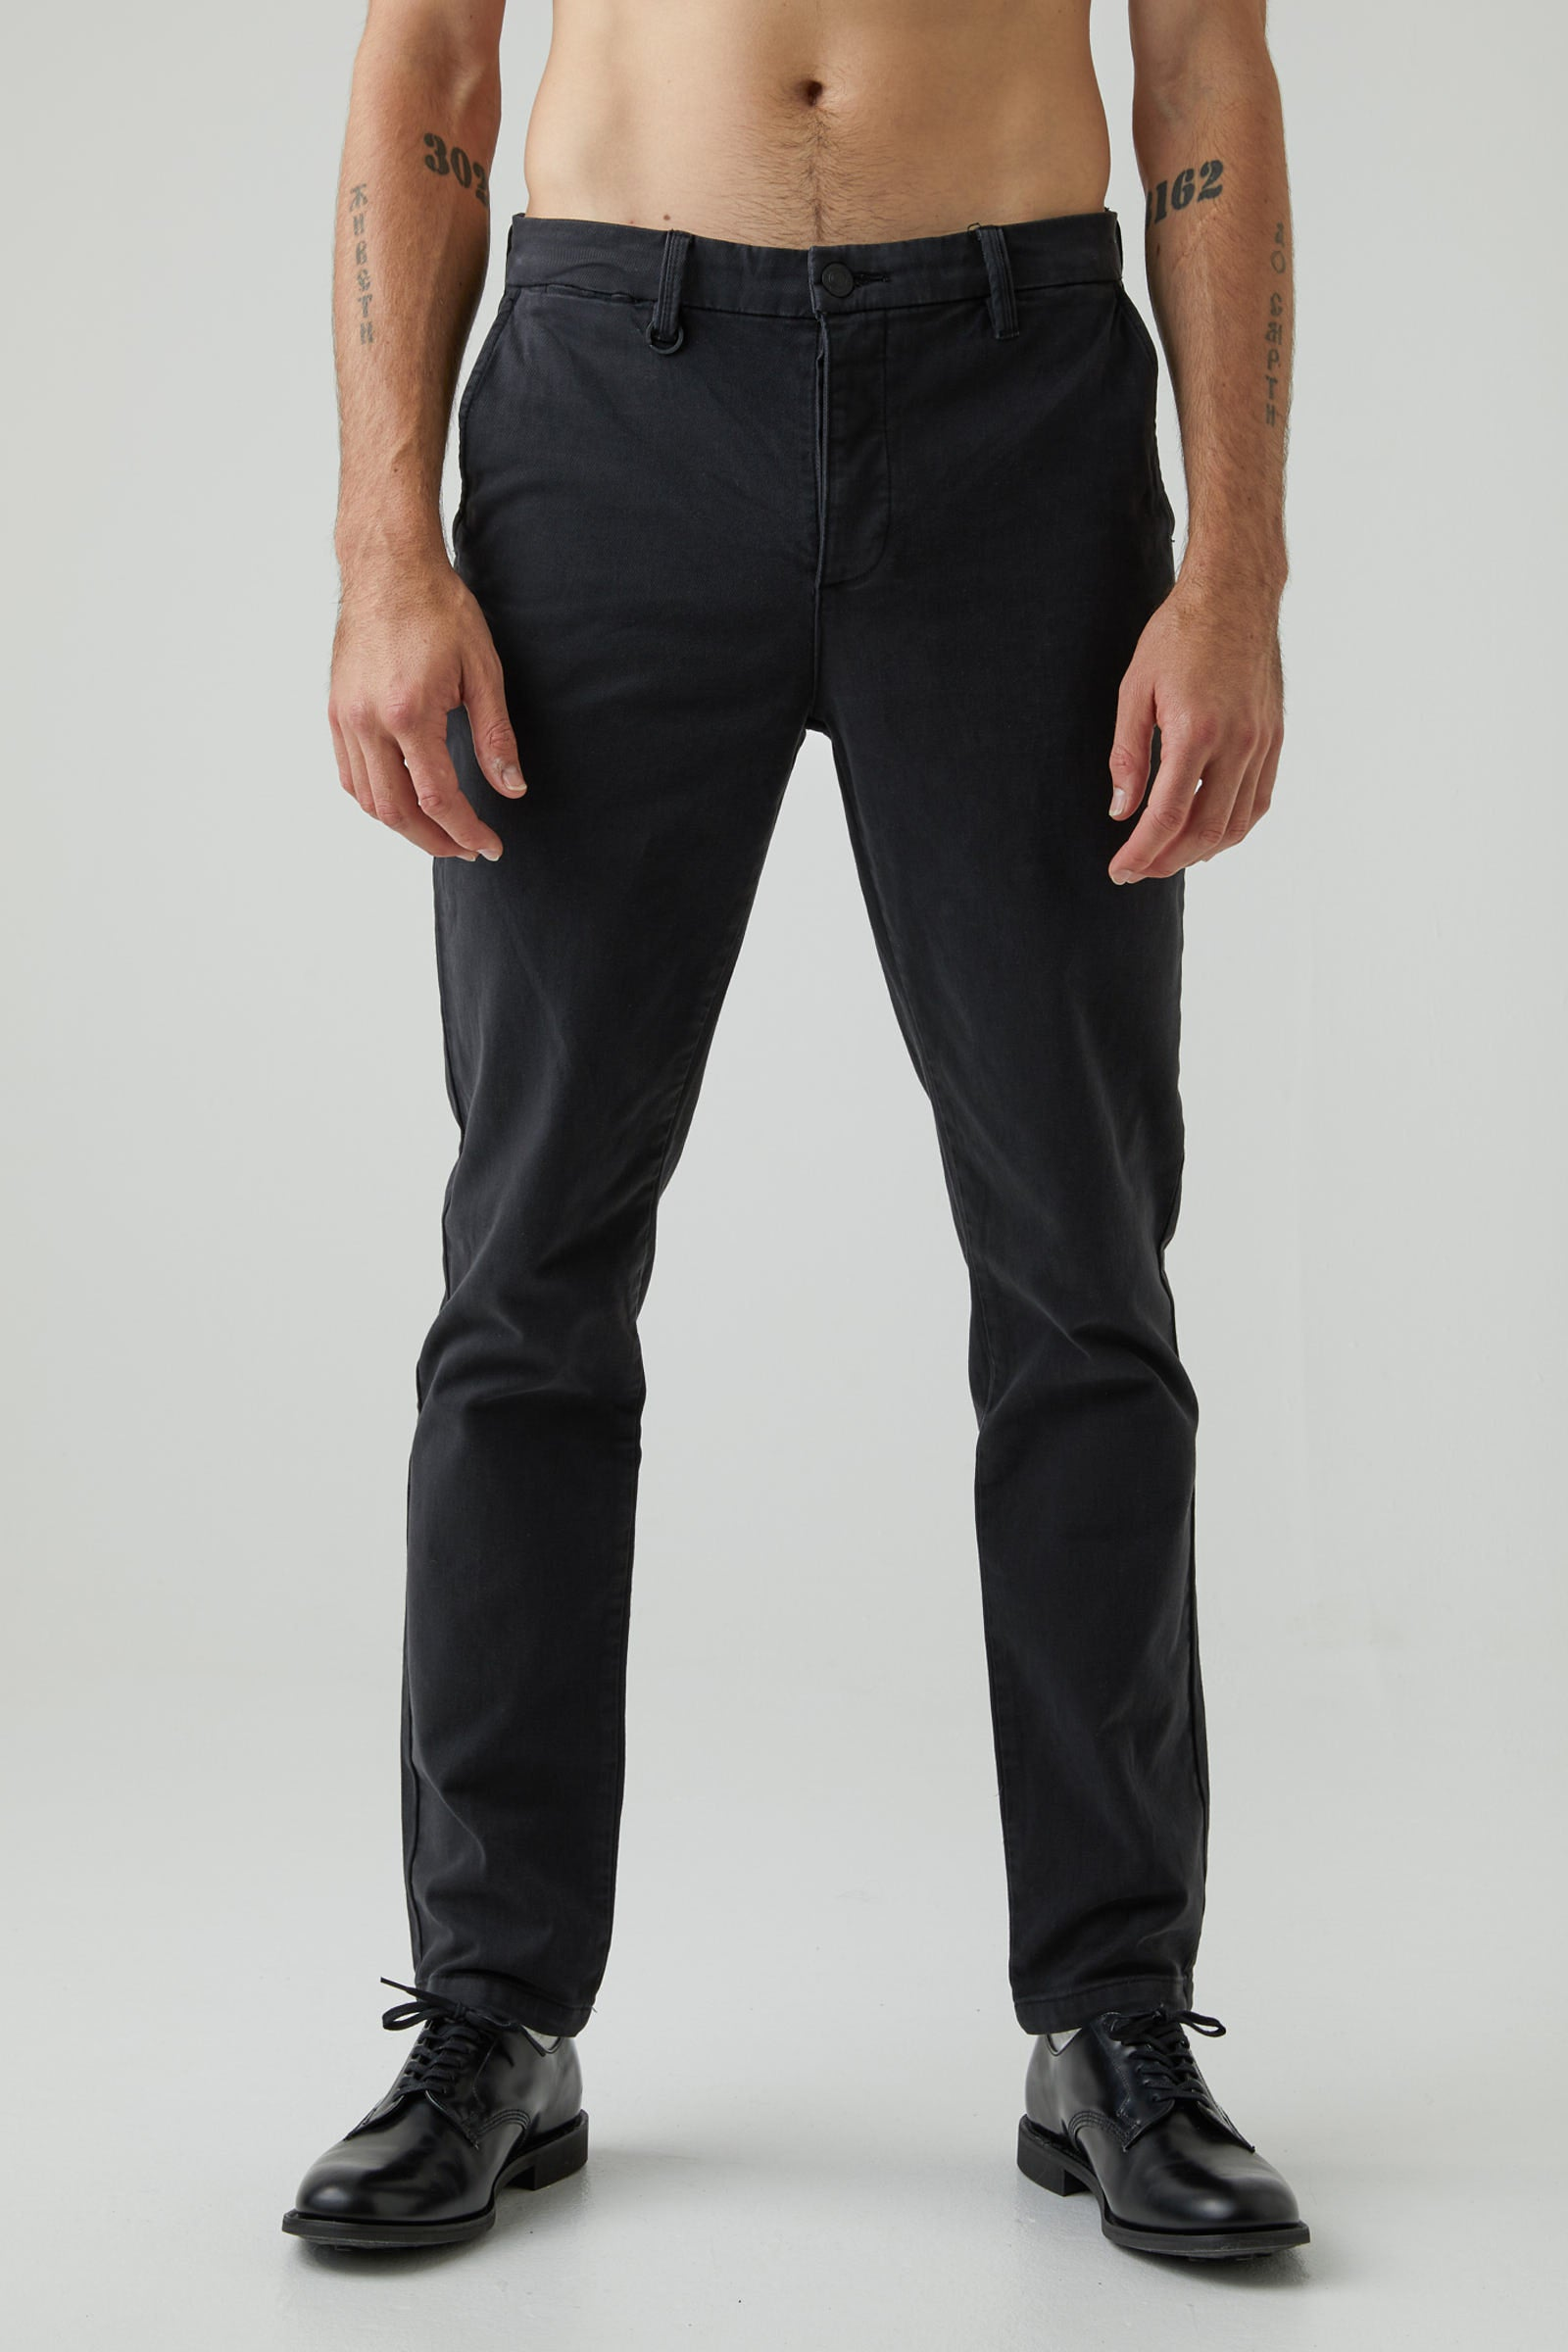 Clash Slim Pant - Washed Black